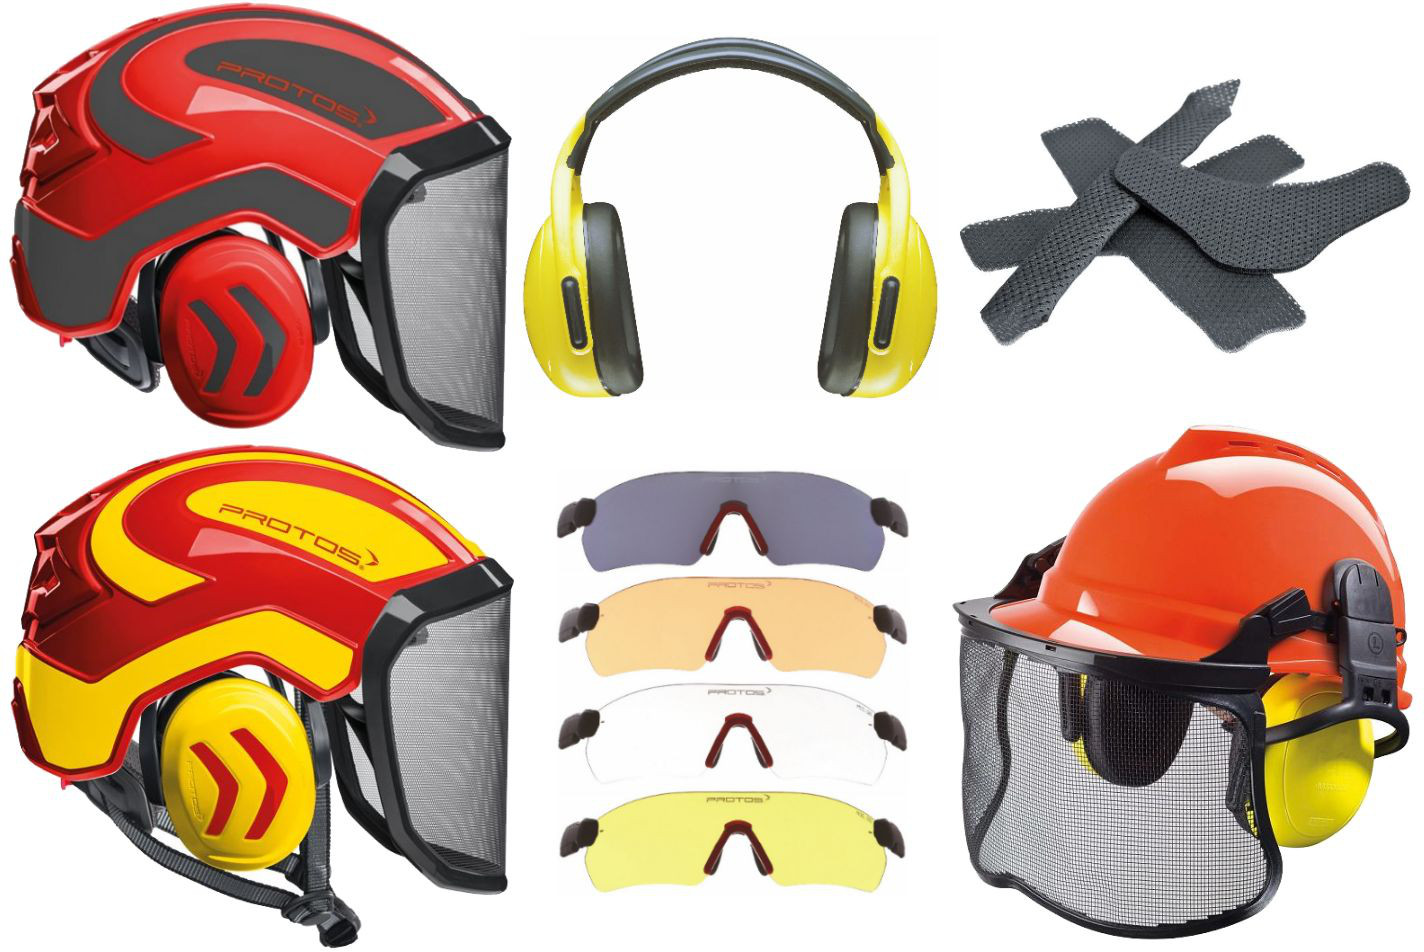 CASQUES DE PROTECTION